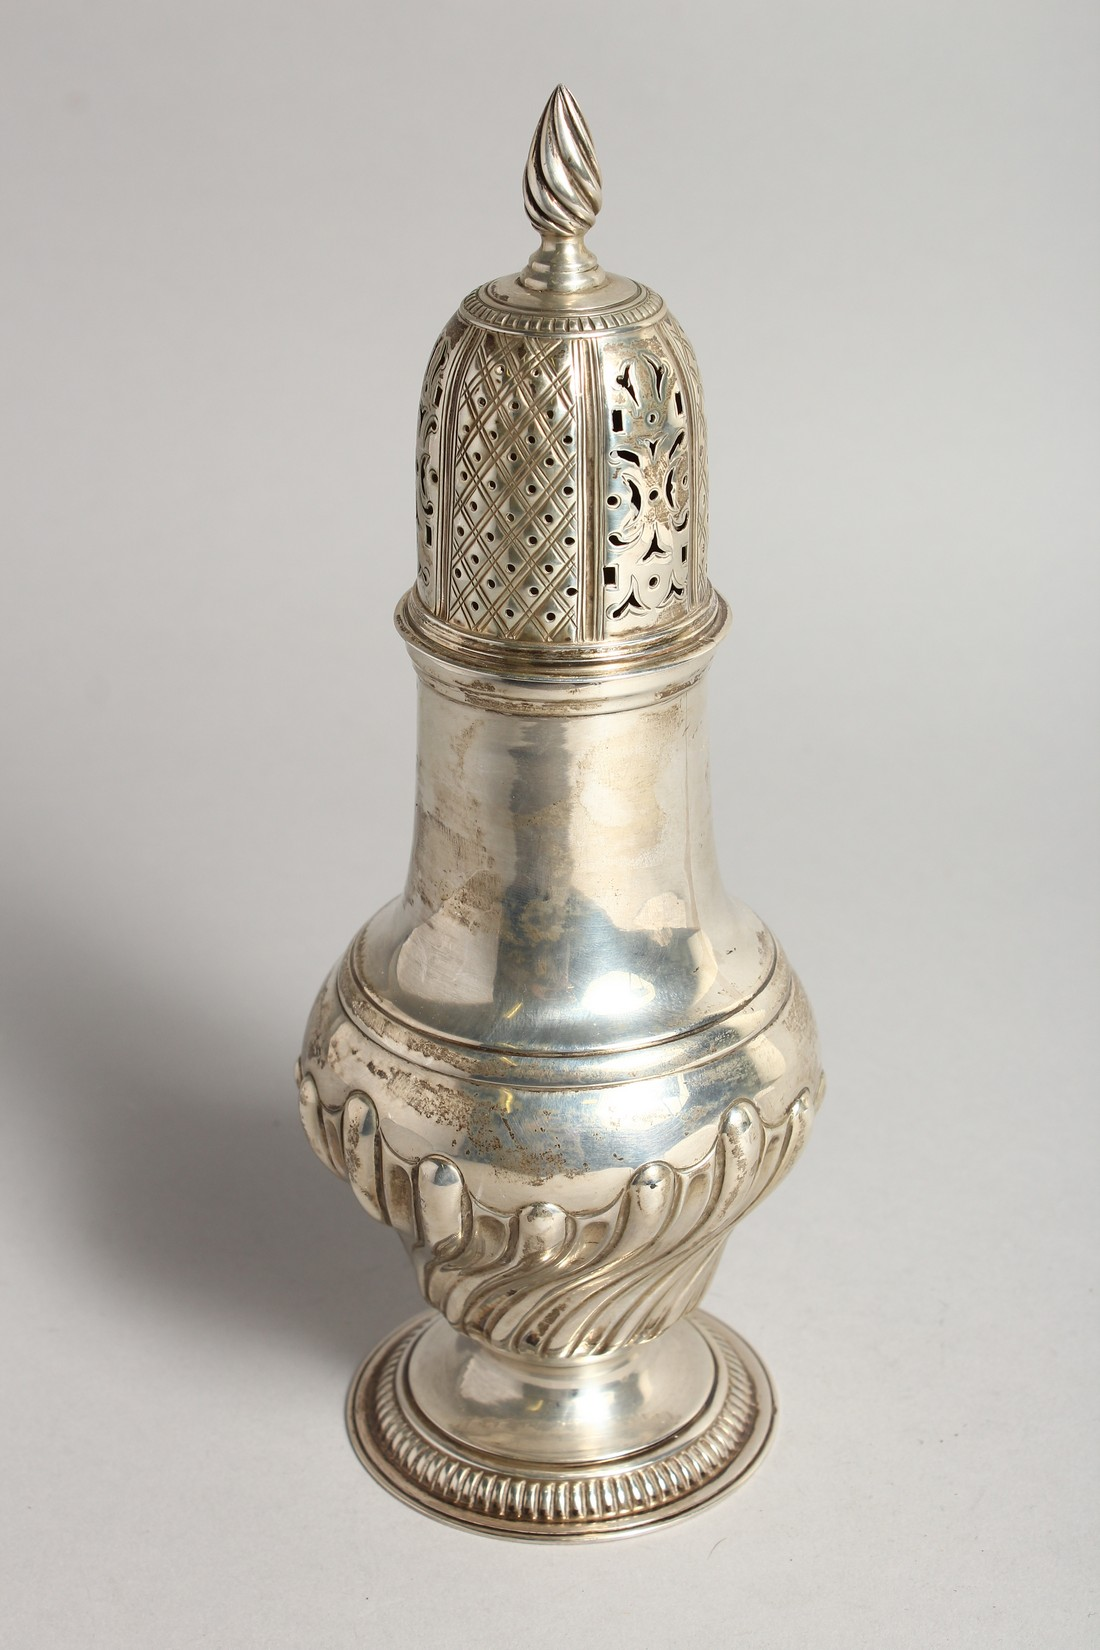 A LARGE SILVER PEDESTAL SUGAR CASTER, with wrythen fluted body, London 1894, 9.75ins high. - Image 5 of 7